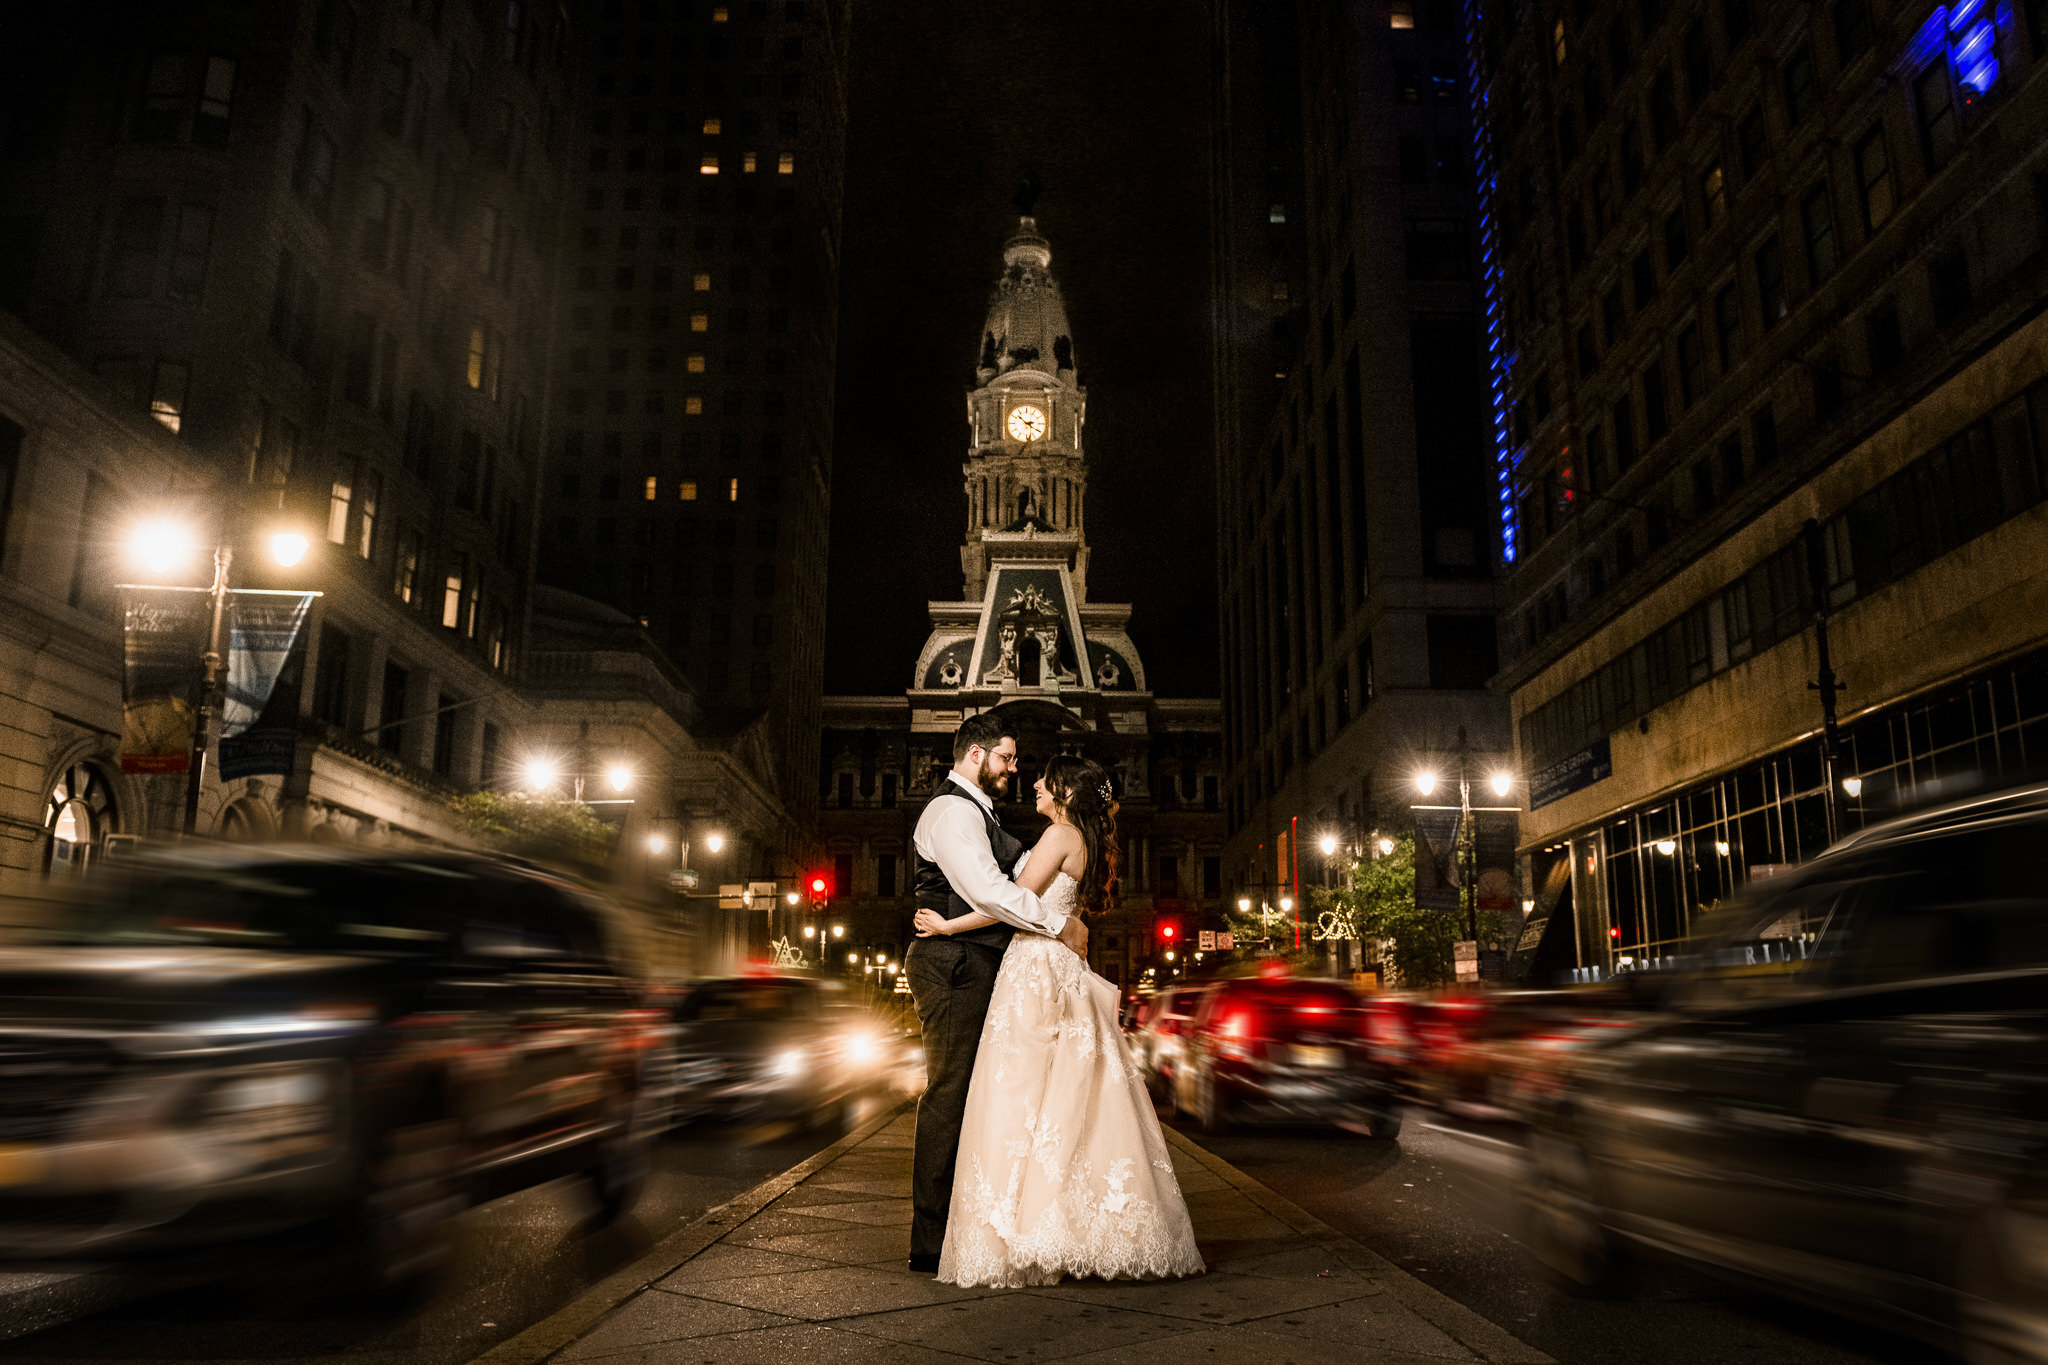 Brozenia-Ritz-Carlton-Philadelphia-Wedding-Photographer-47.JPG